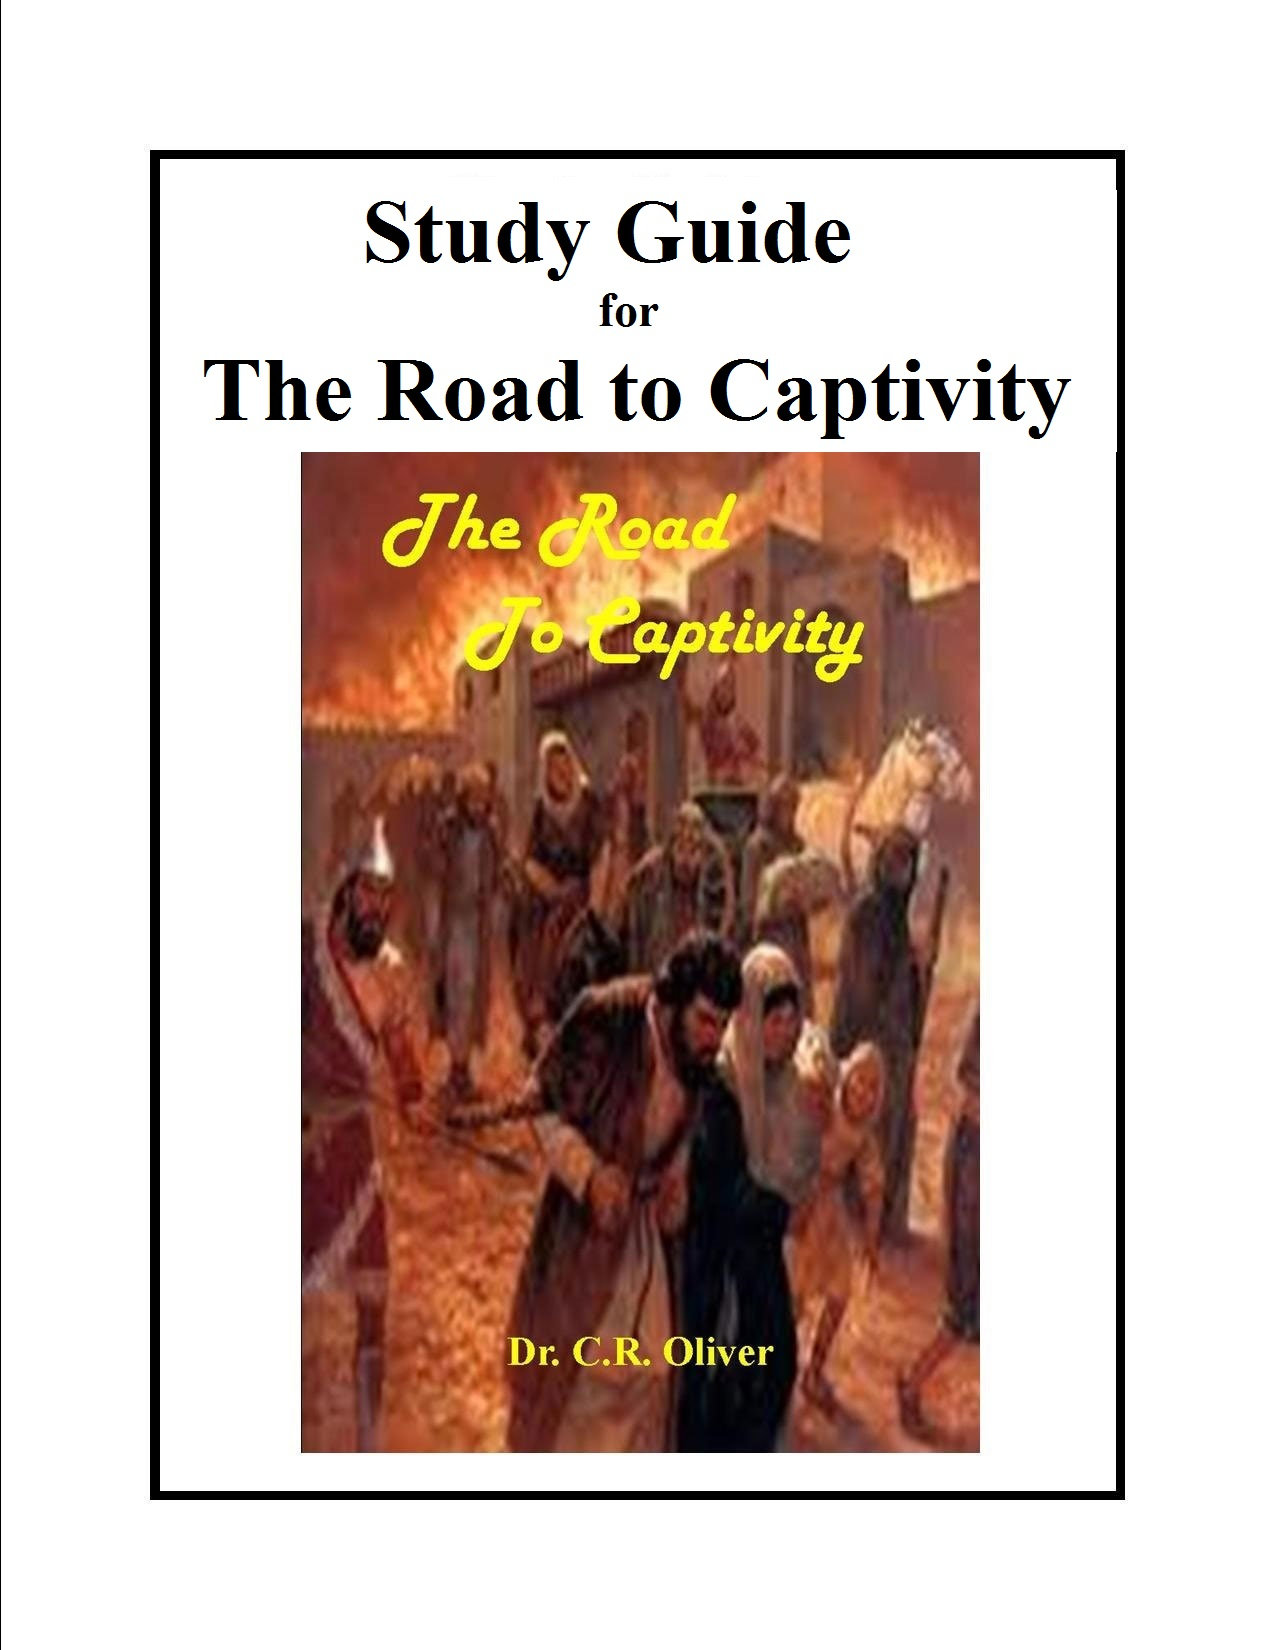 Study Guide - The Road To Captivity